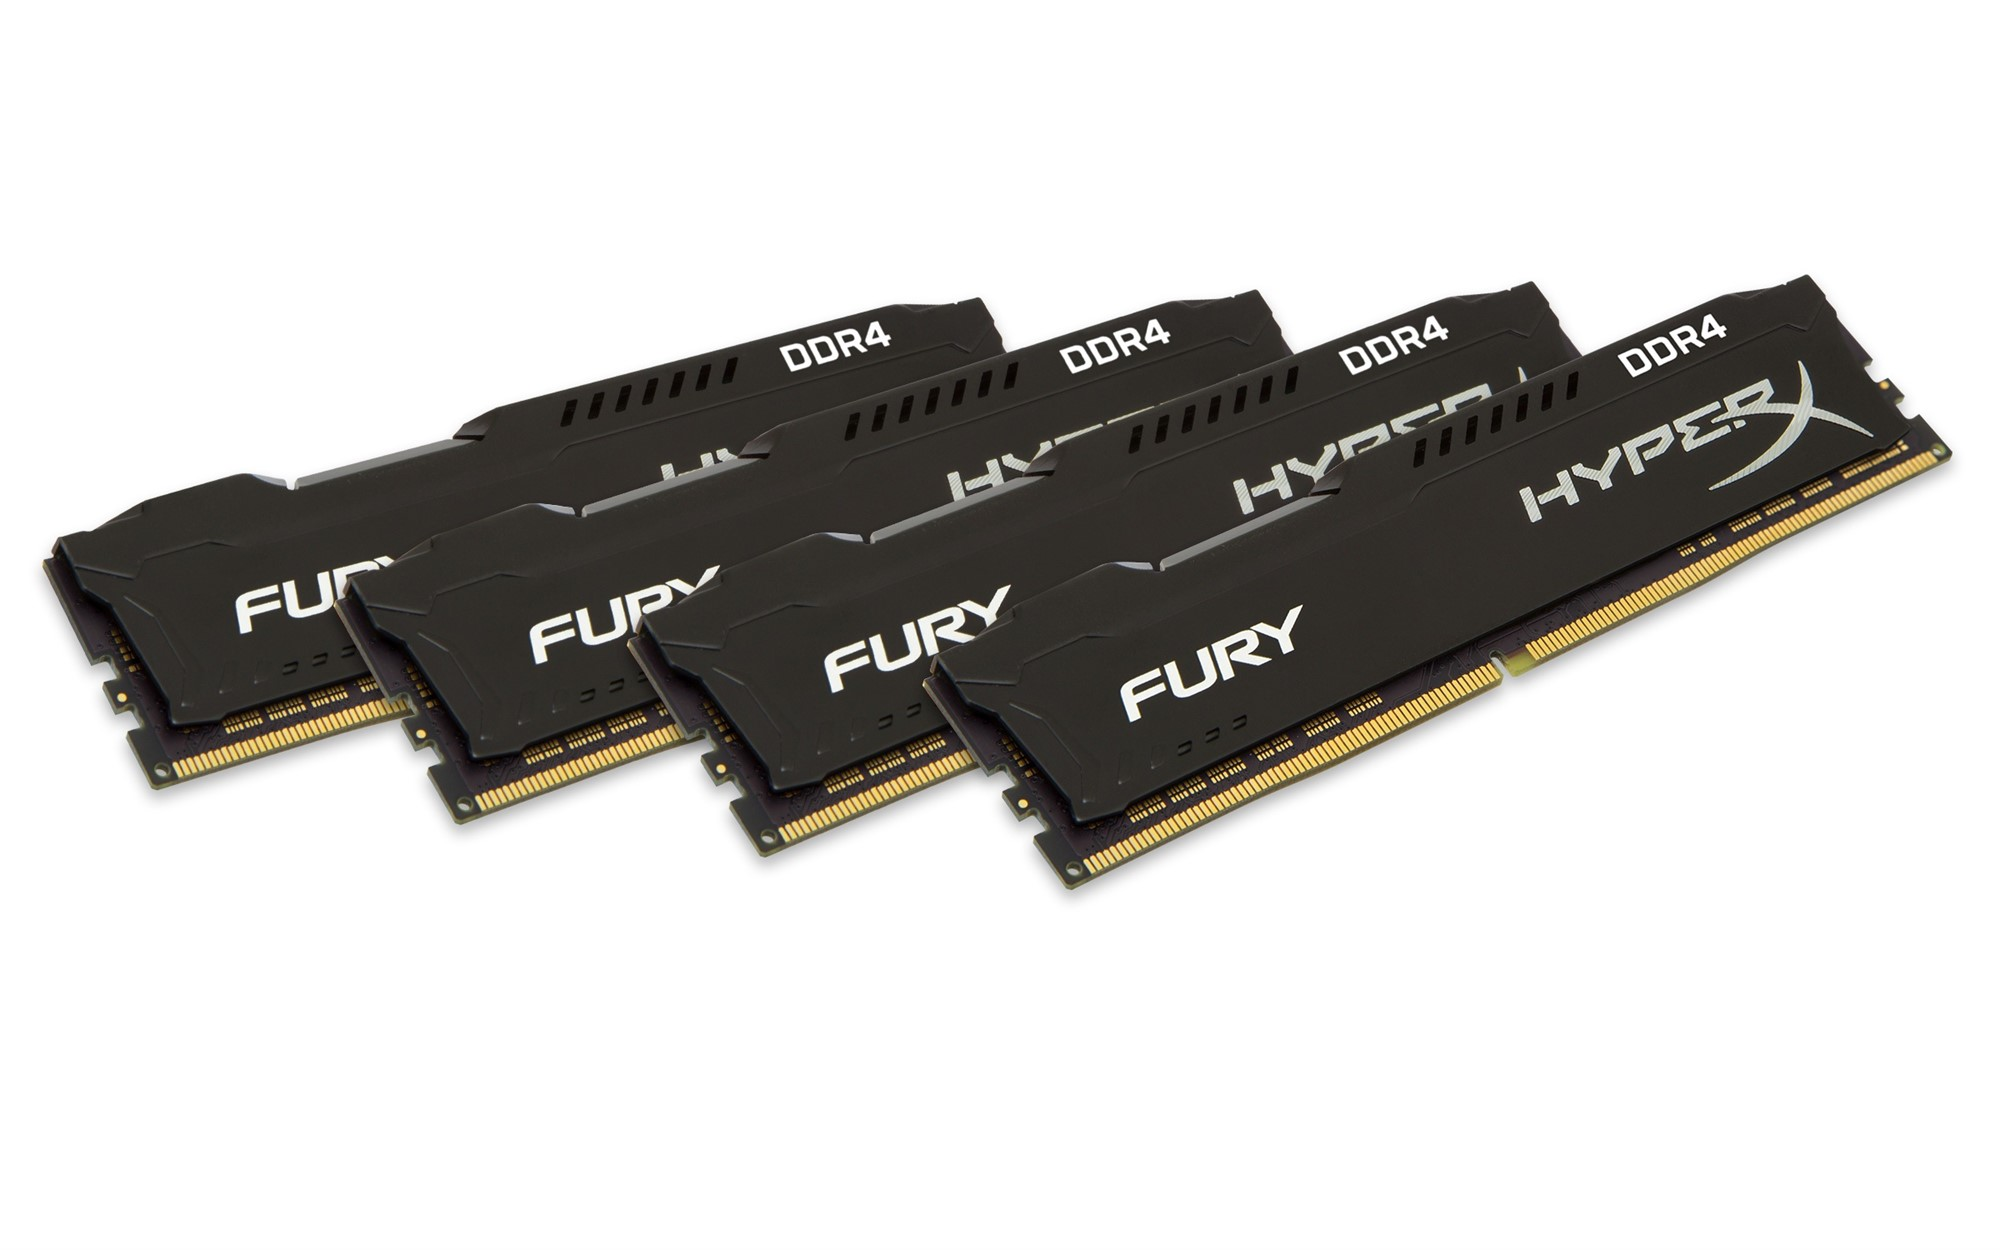 HYPERX FURY BLACK 32GB DDR4 2400MHZ KIT MEMORY MODULE